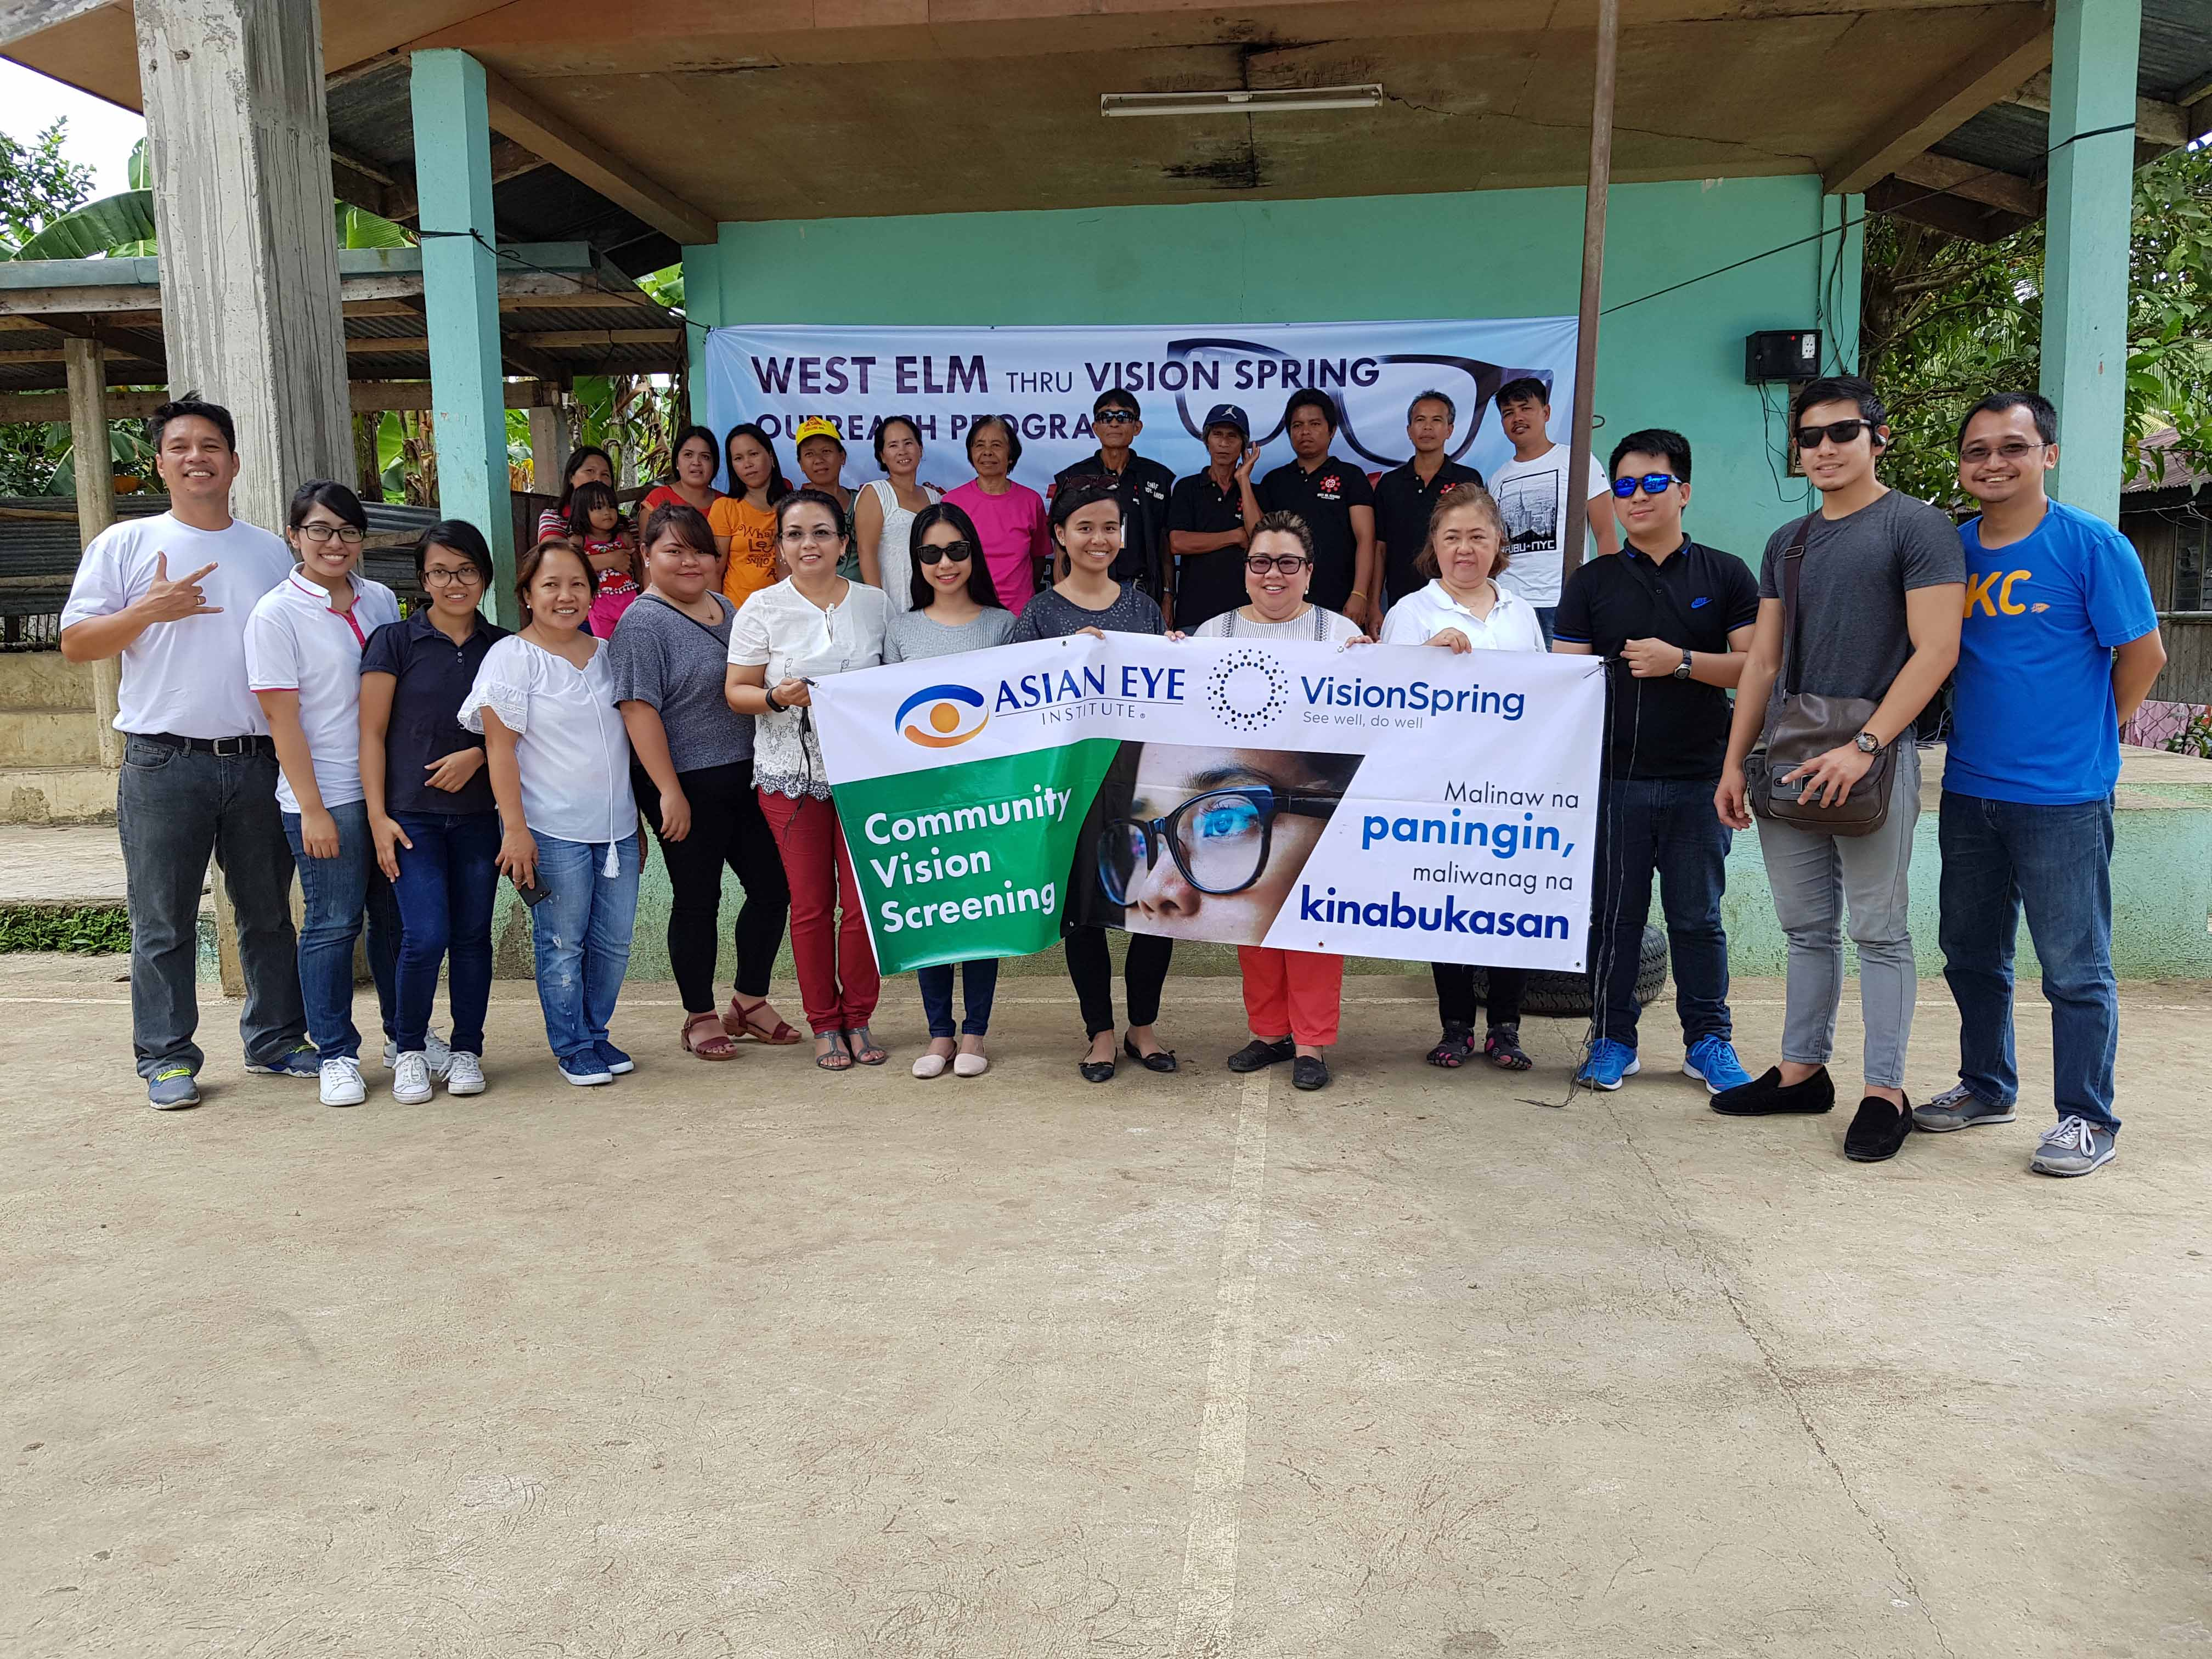 Asian Eye partners with VisionSpring to provide checkups, eyeglasses to workers